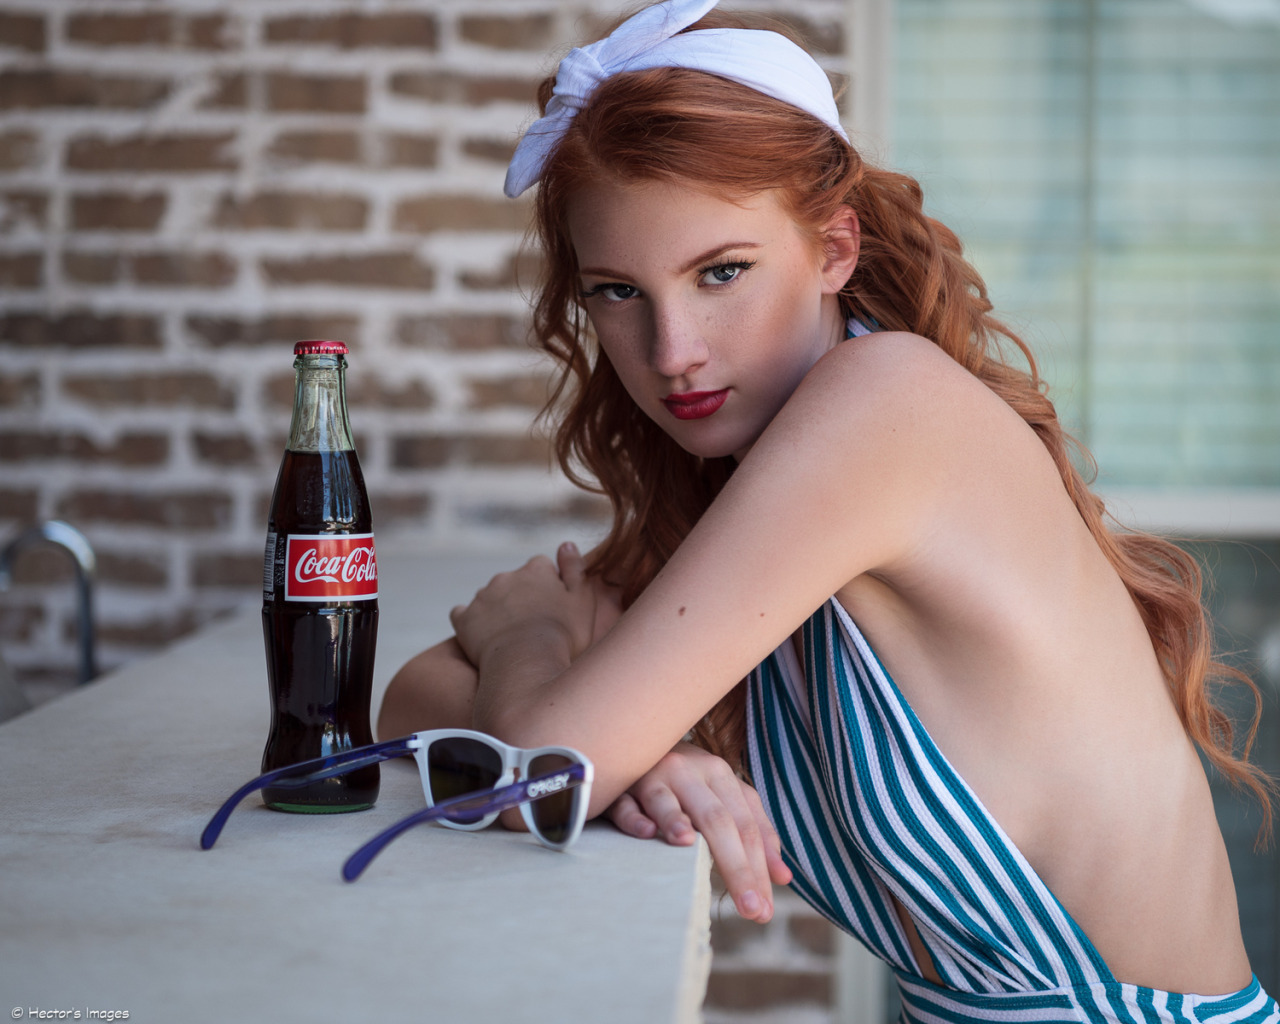 tabitha blue bus free videos porn tubes tabitha #cocacola, #eyecontact, #redhead, #nonnude, #pale, #adorable, #redlips, #sexydress